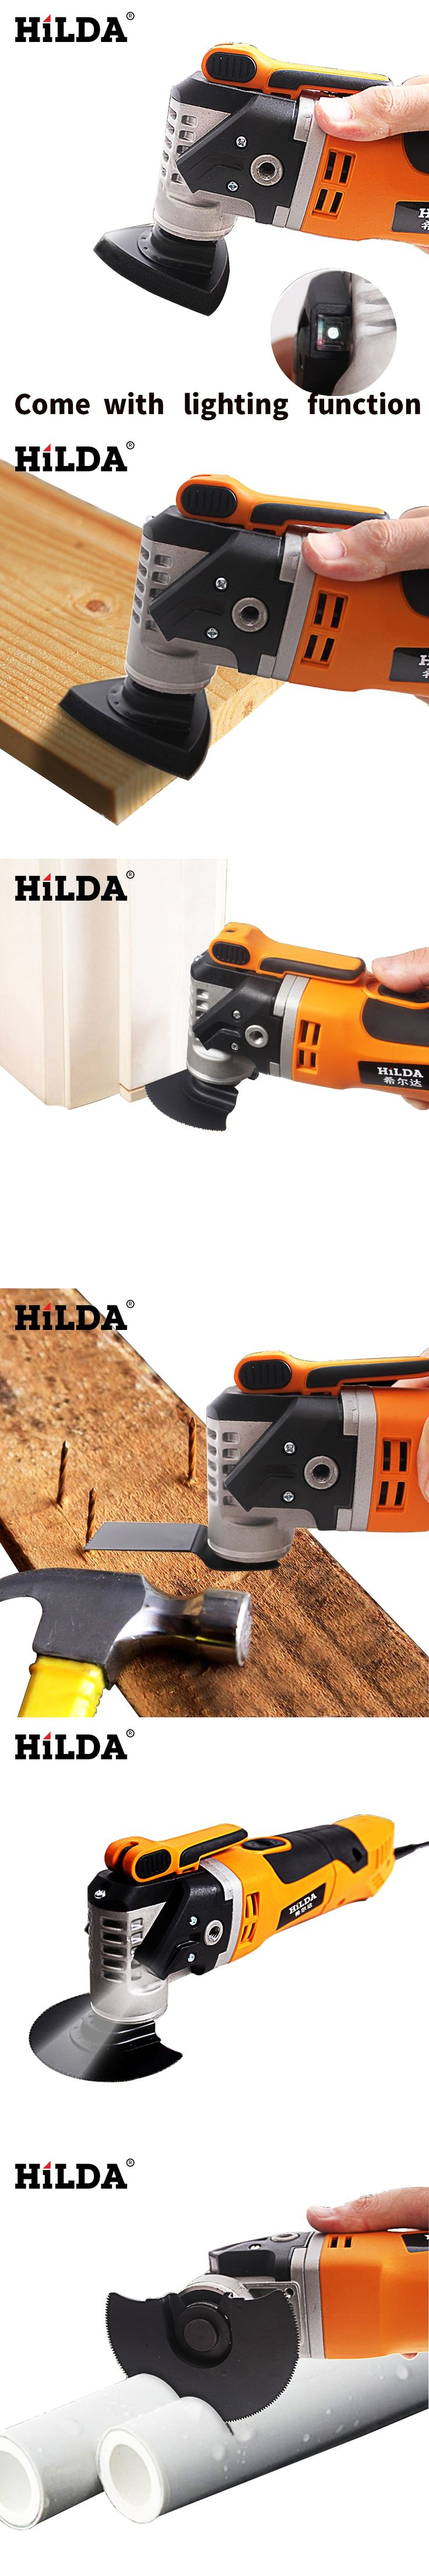 HILDA  Multi-Function Electric Saw Renovator Tool Oscillating Trimmer Home Renovation Tool Trimmer woodworking Tools